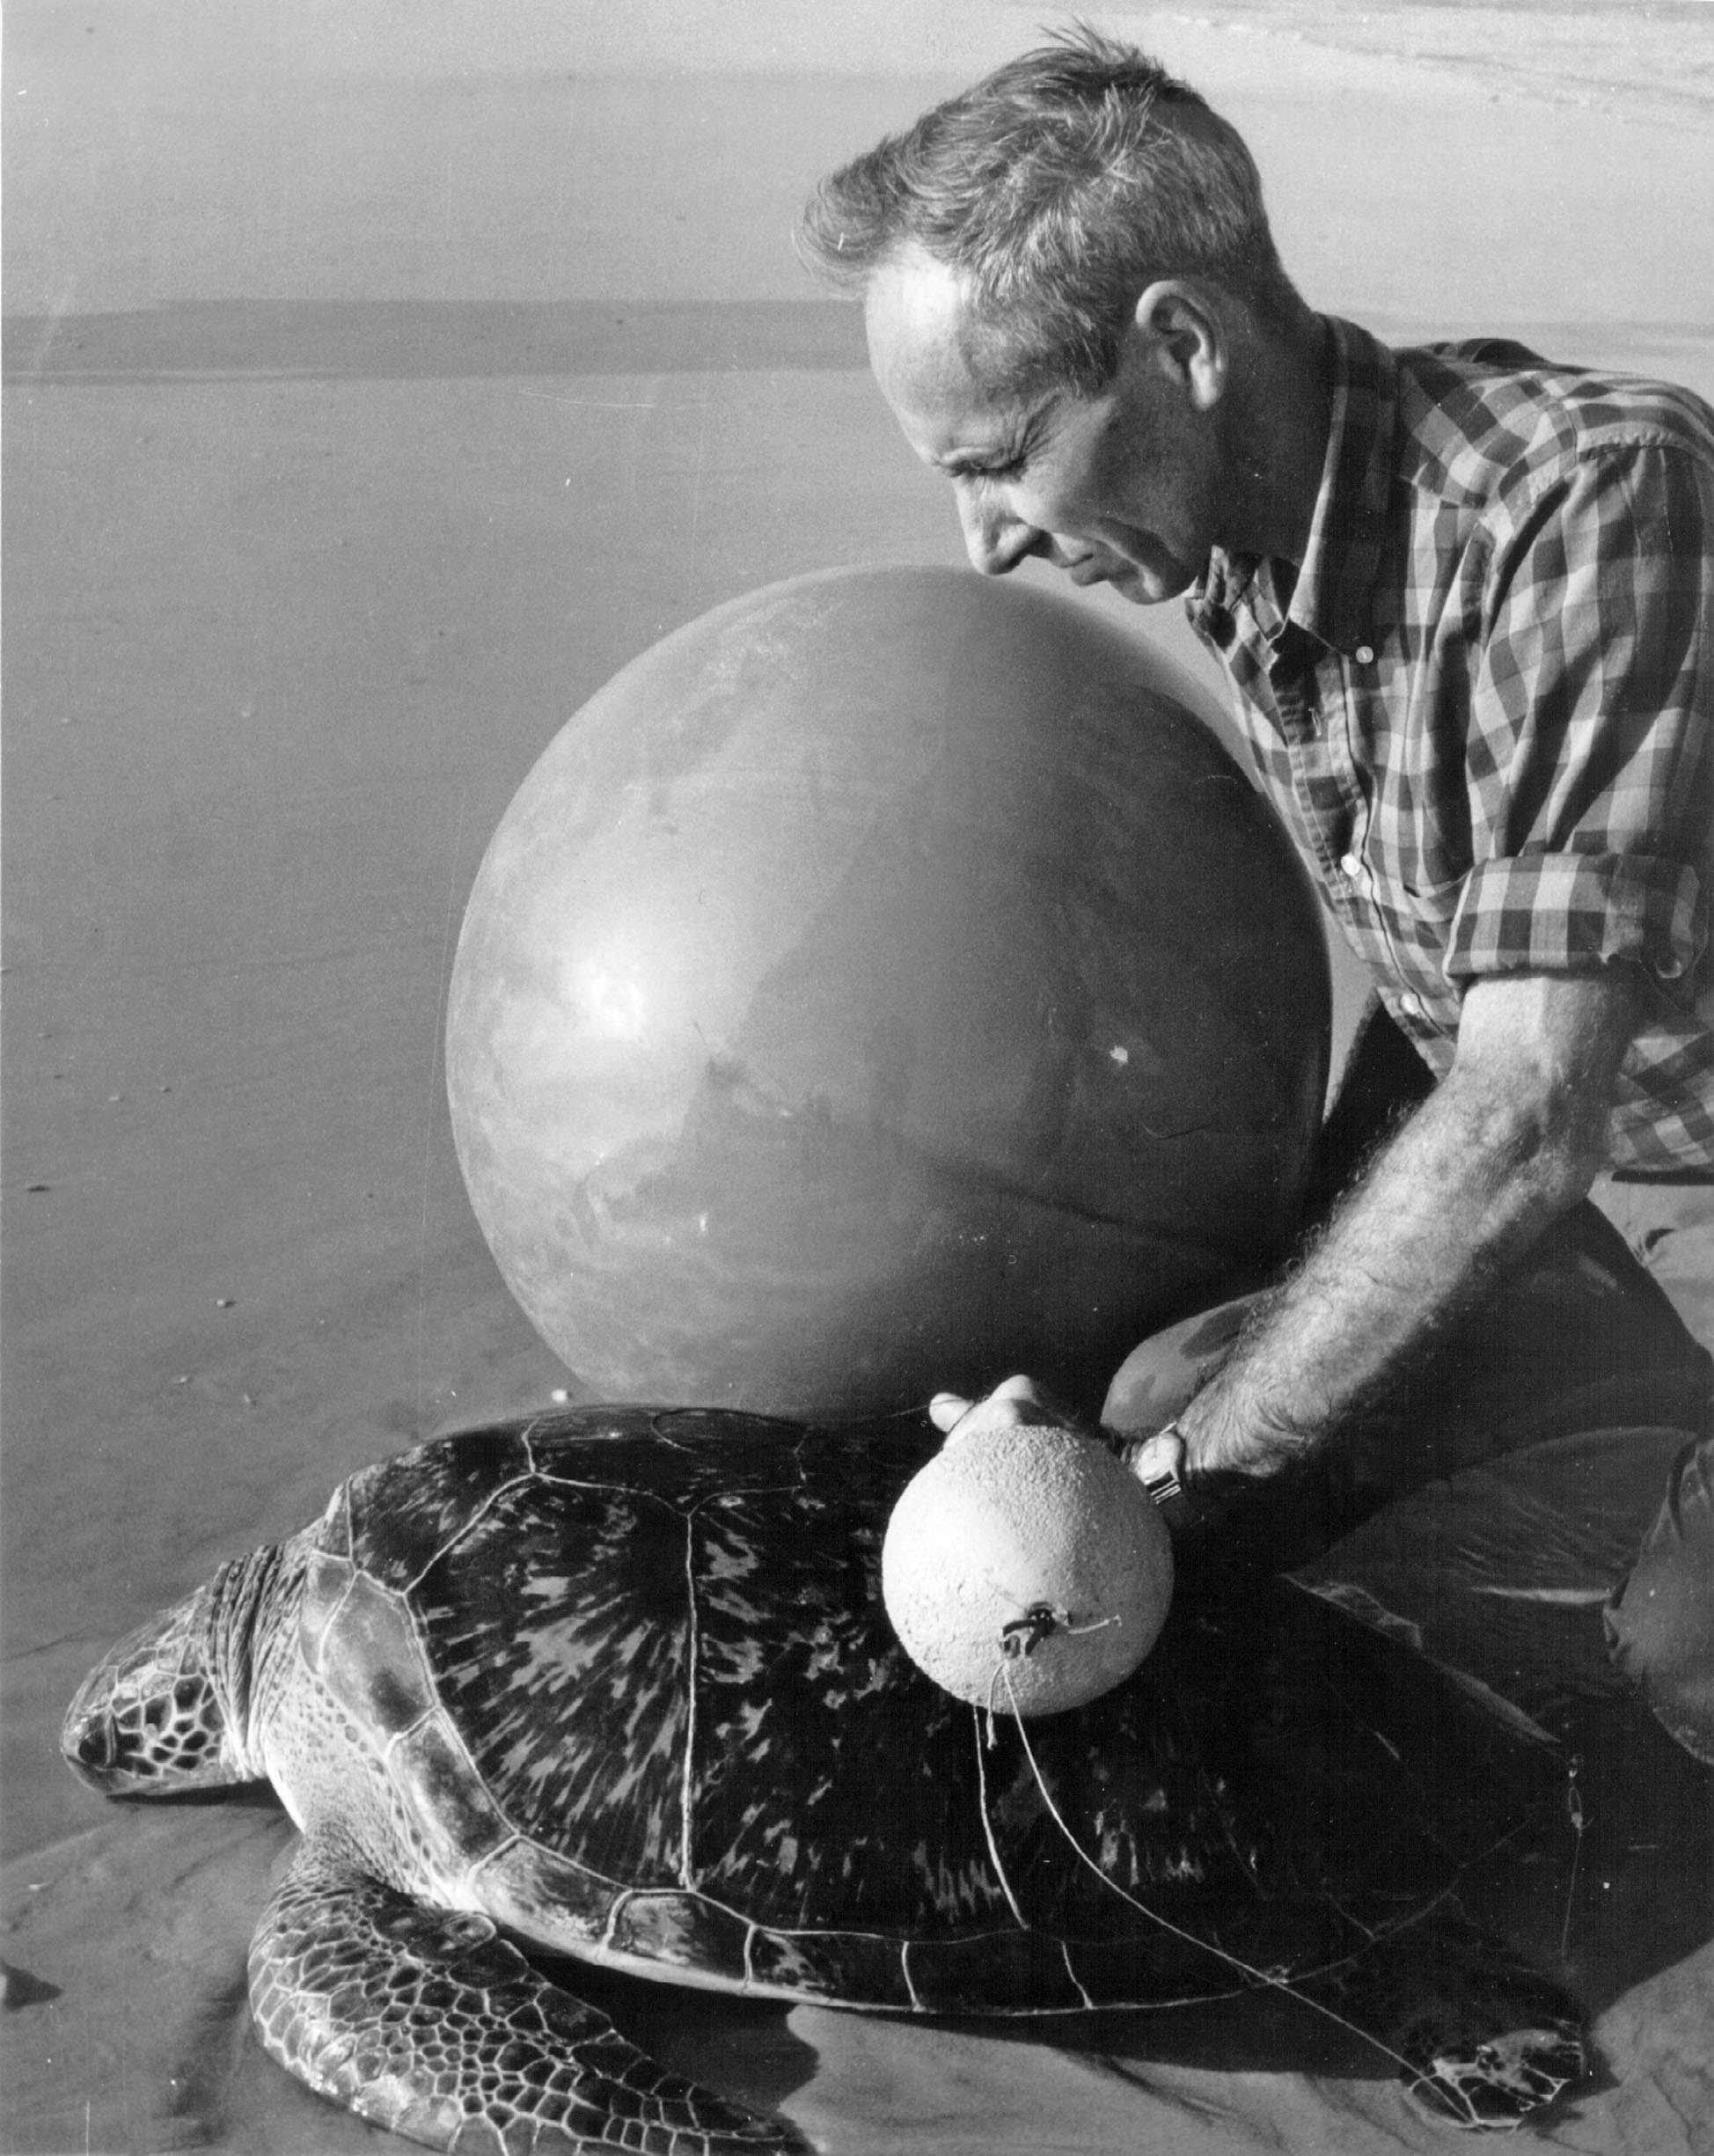 In the 1950s, Dr. Archie Carr used the technology of his day in an attempt to track green turtle inter-nesting movements at Tortuguero, Costa Rica. © Courtesy of Sea Turtle Conservancy